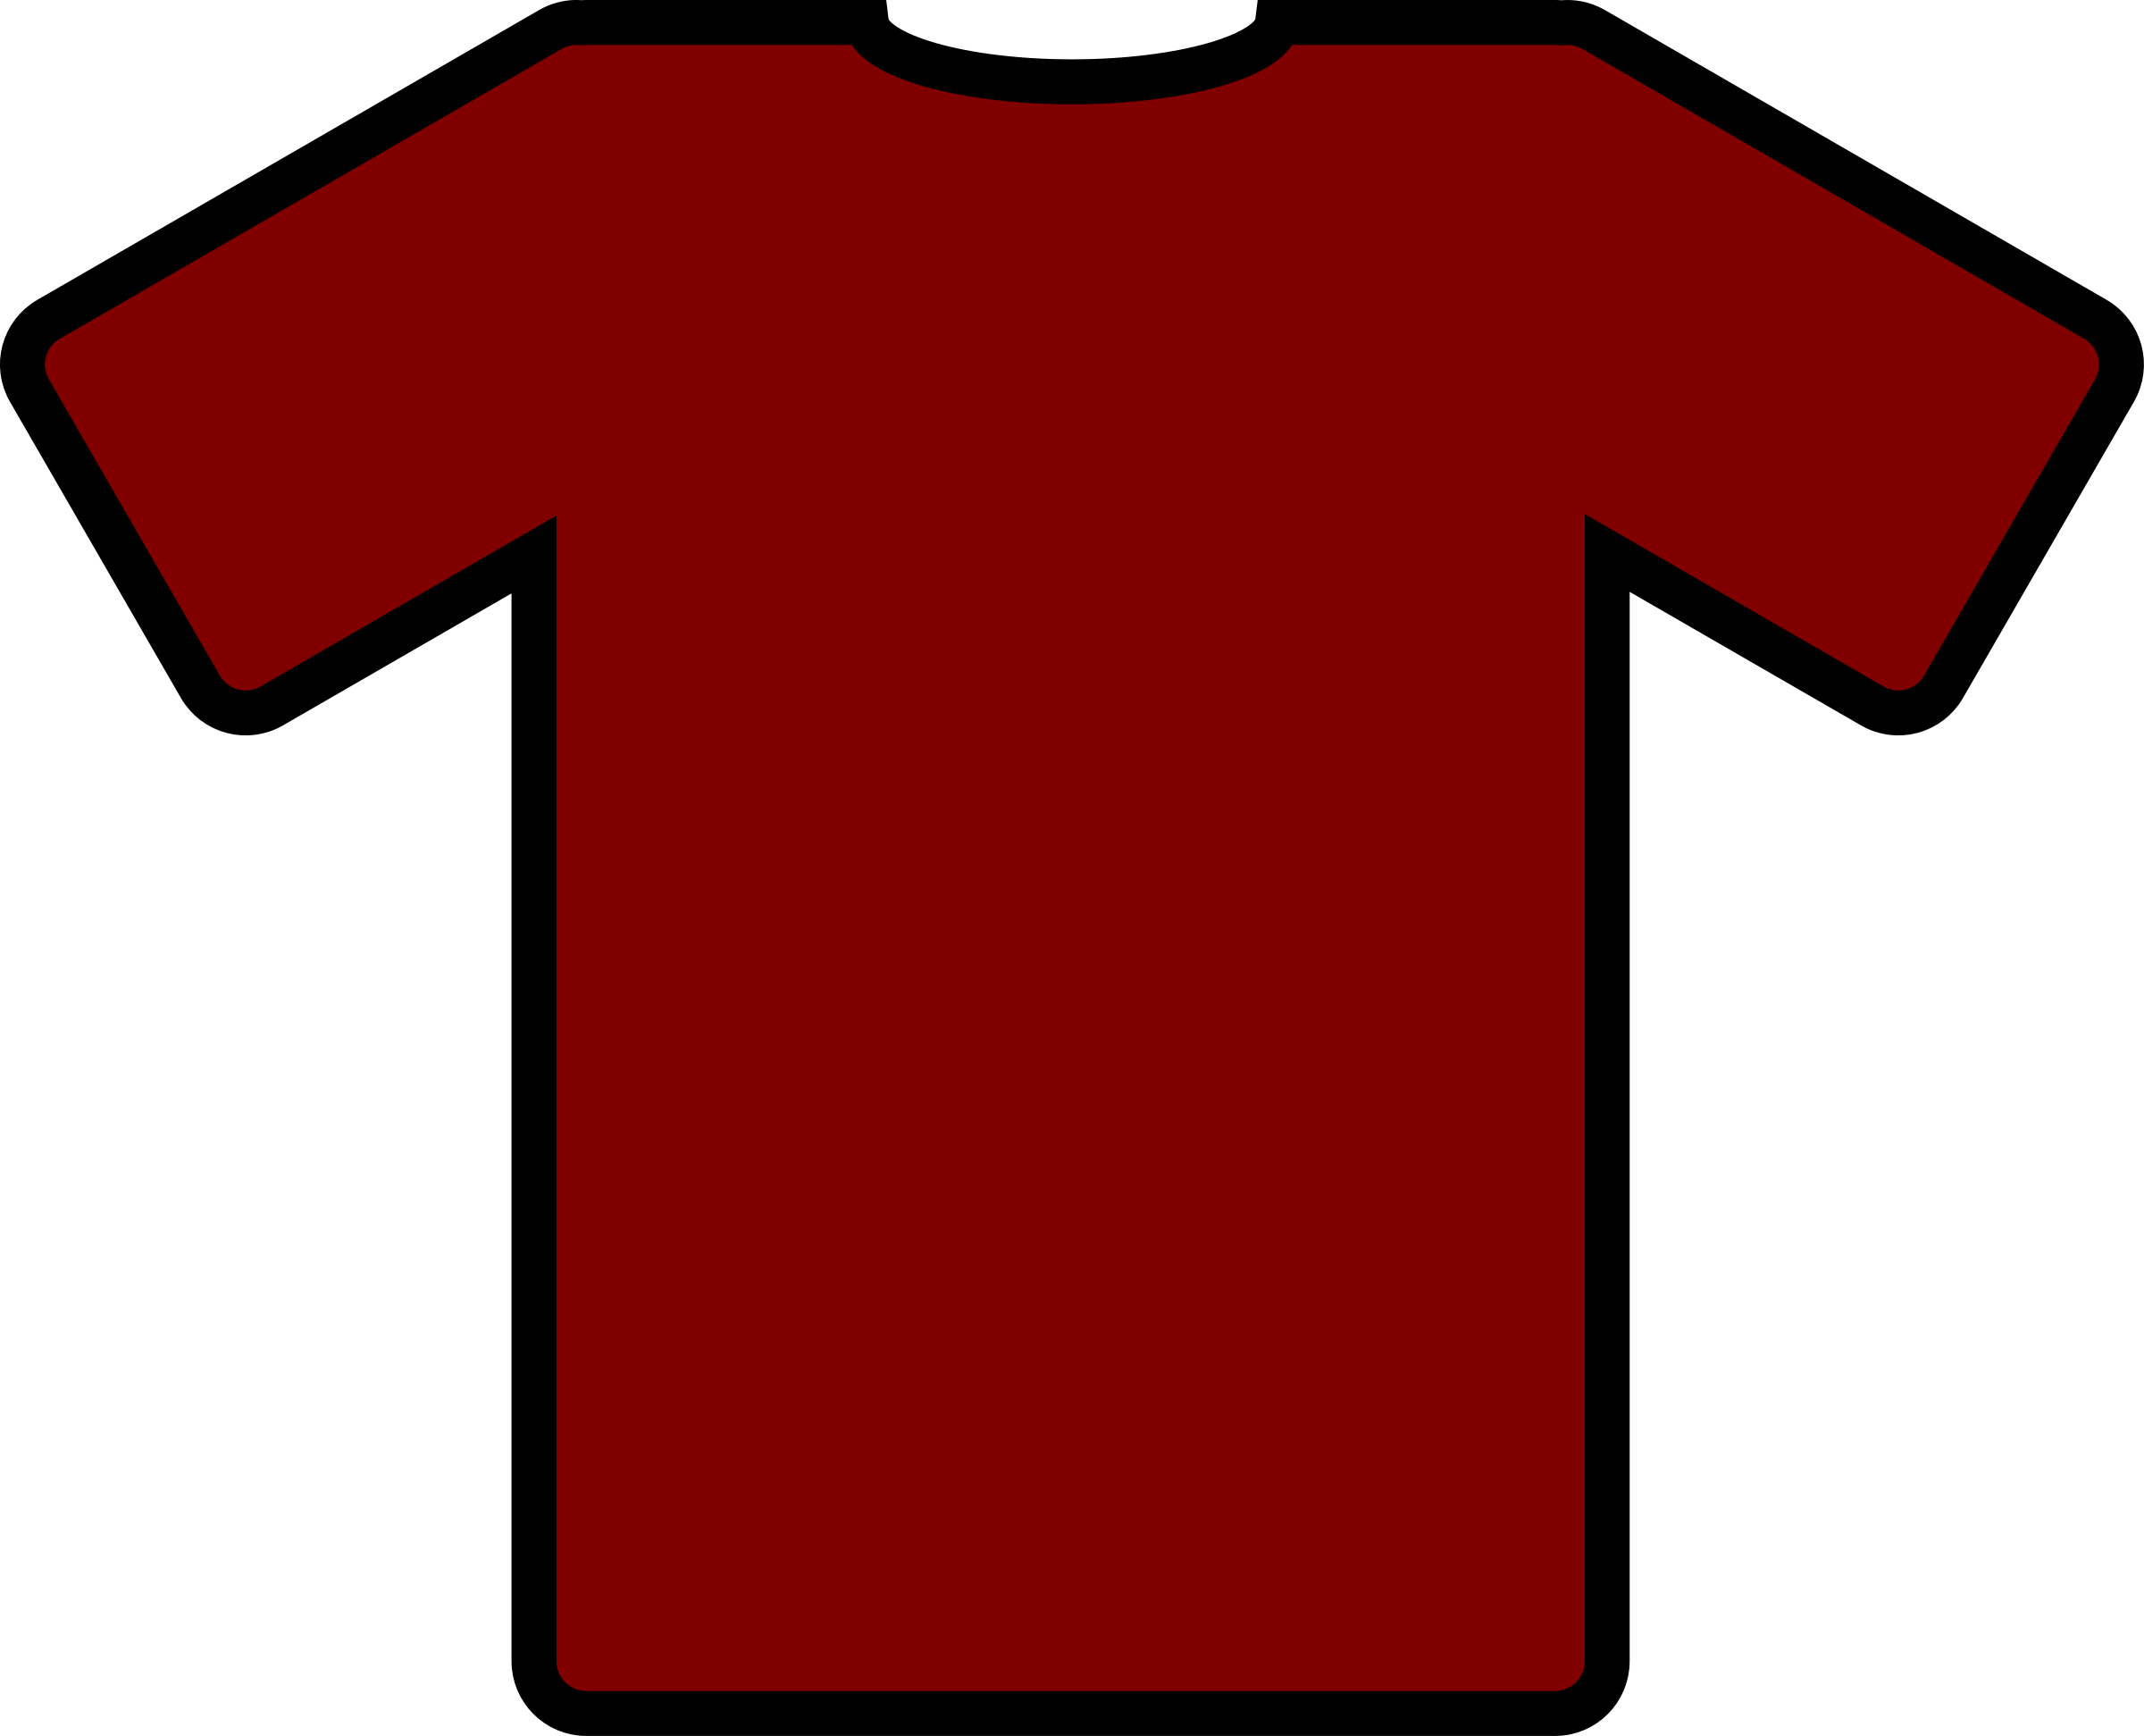 Red T-shirt Clipart Png